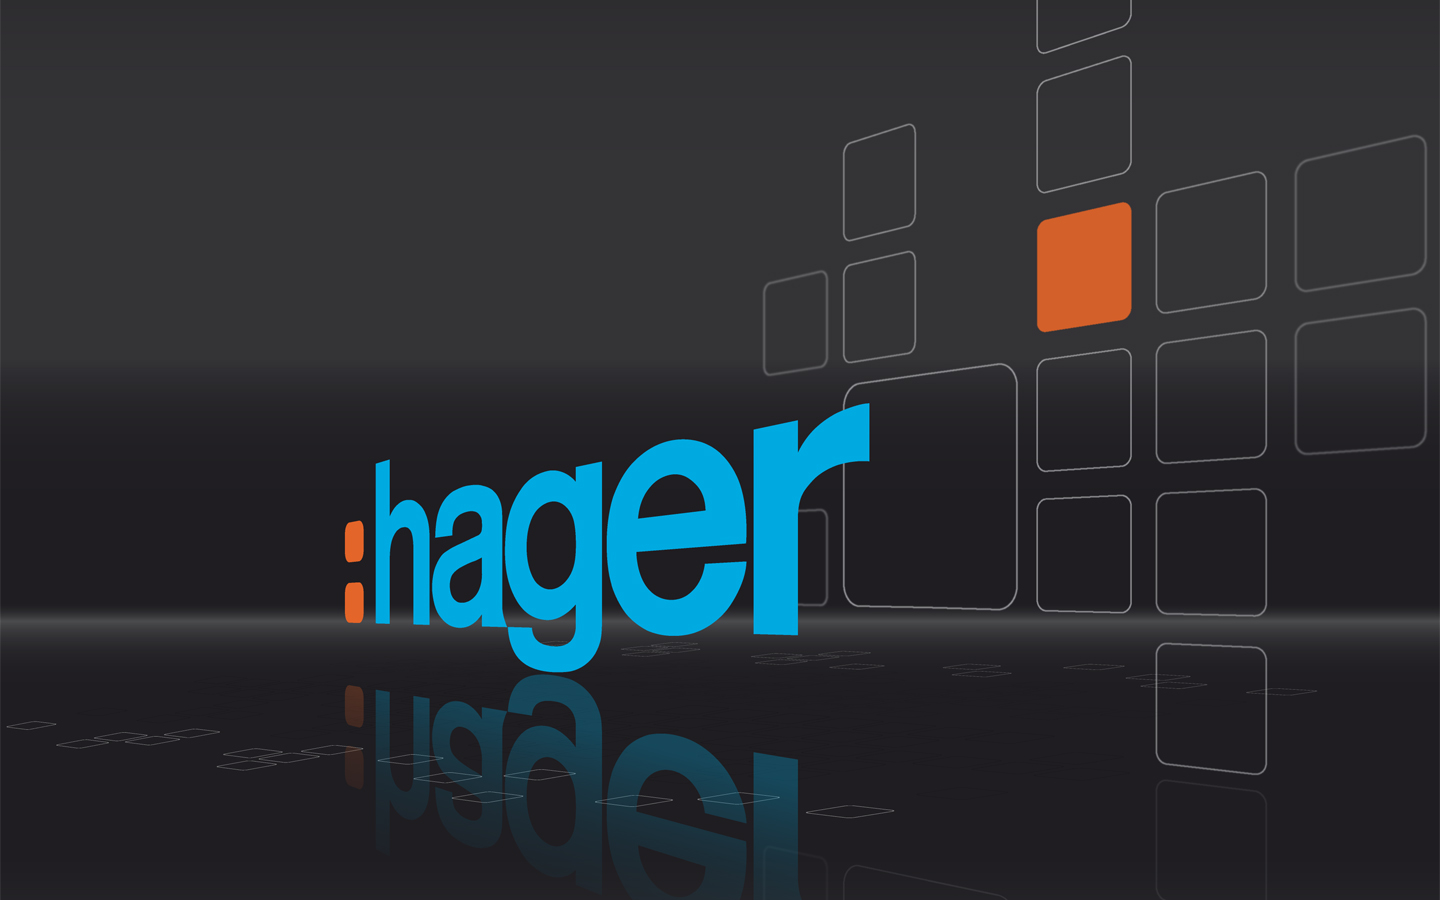 hager wallpaper diagonal black 1440x900